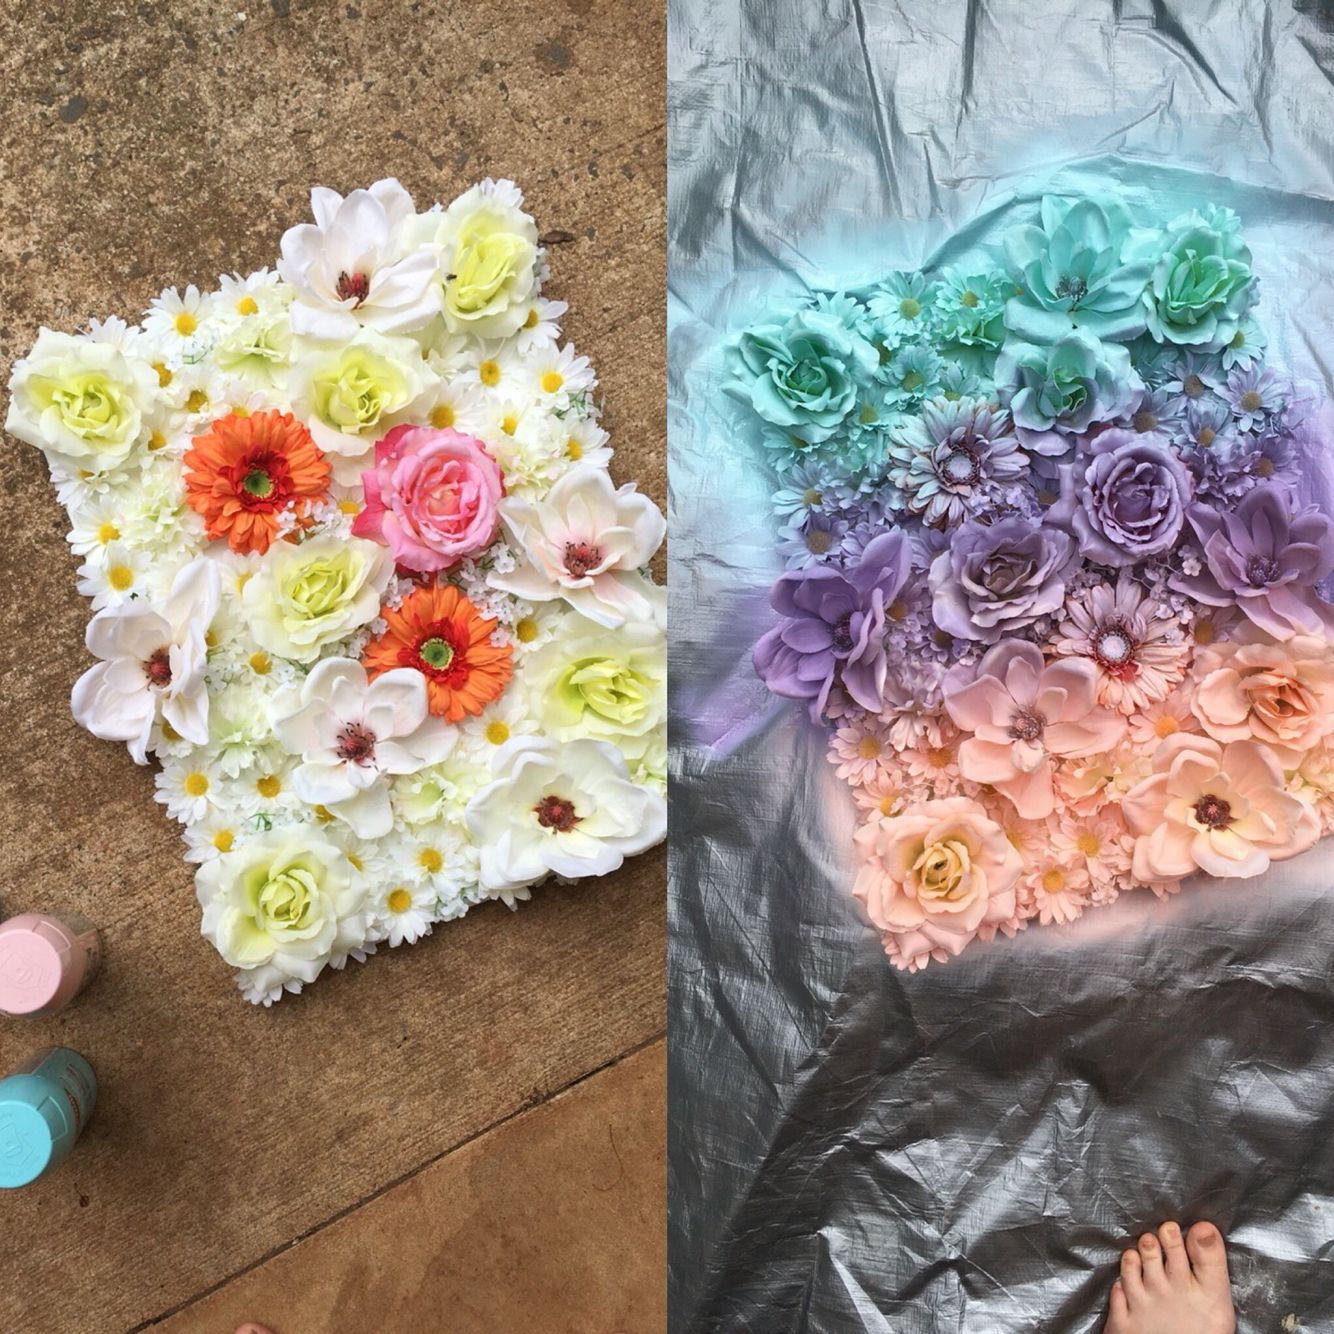 37+ Diy fake flower crafts ideas